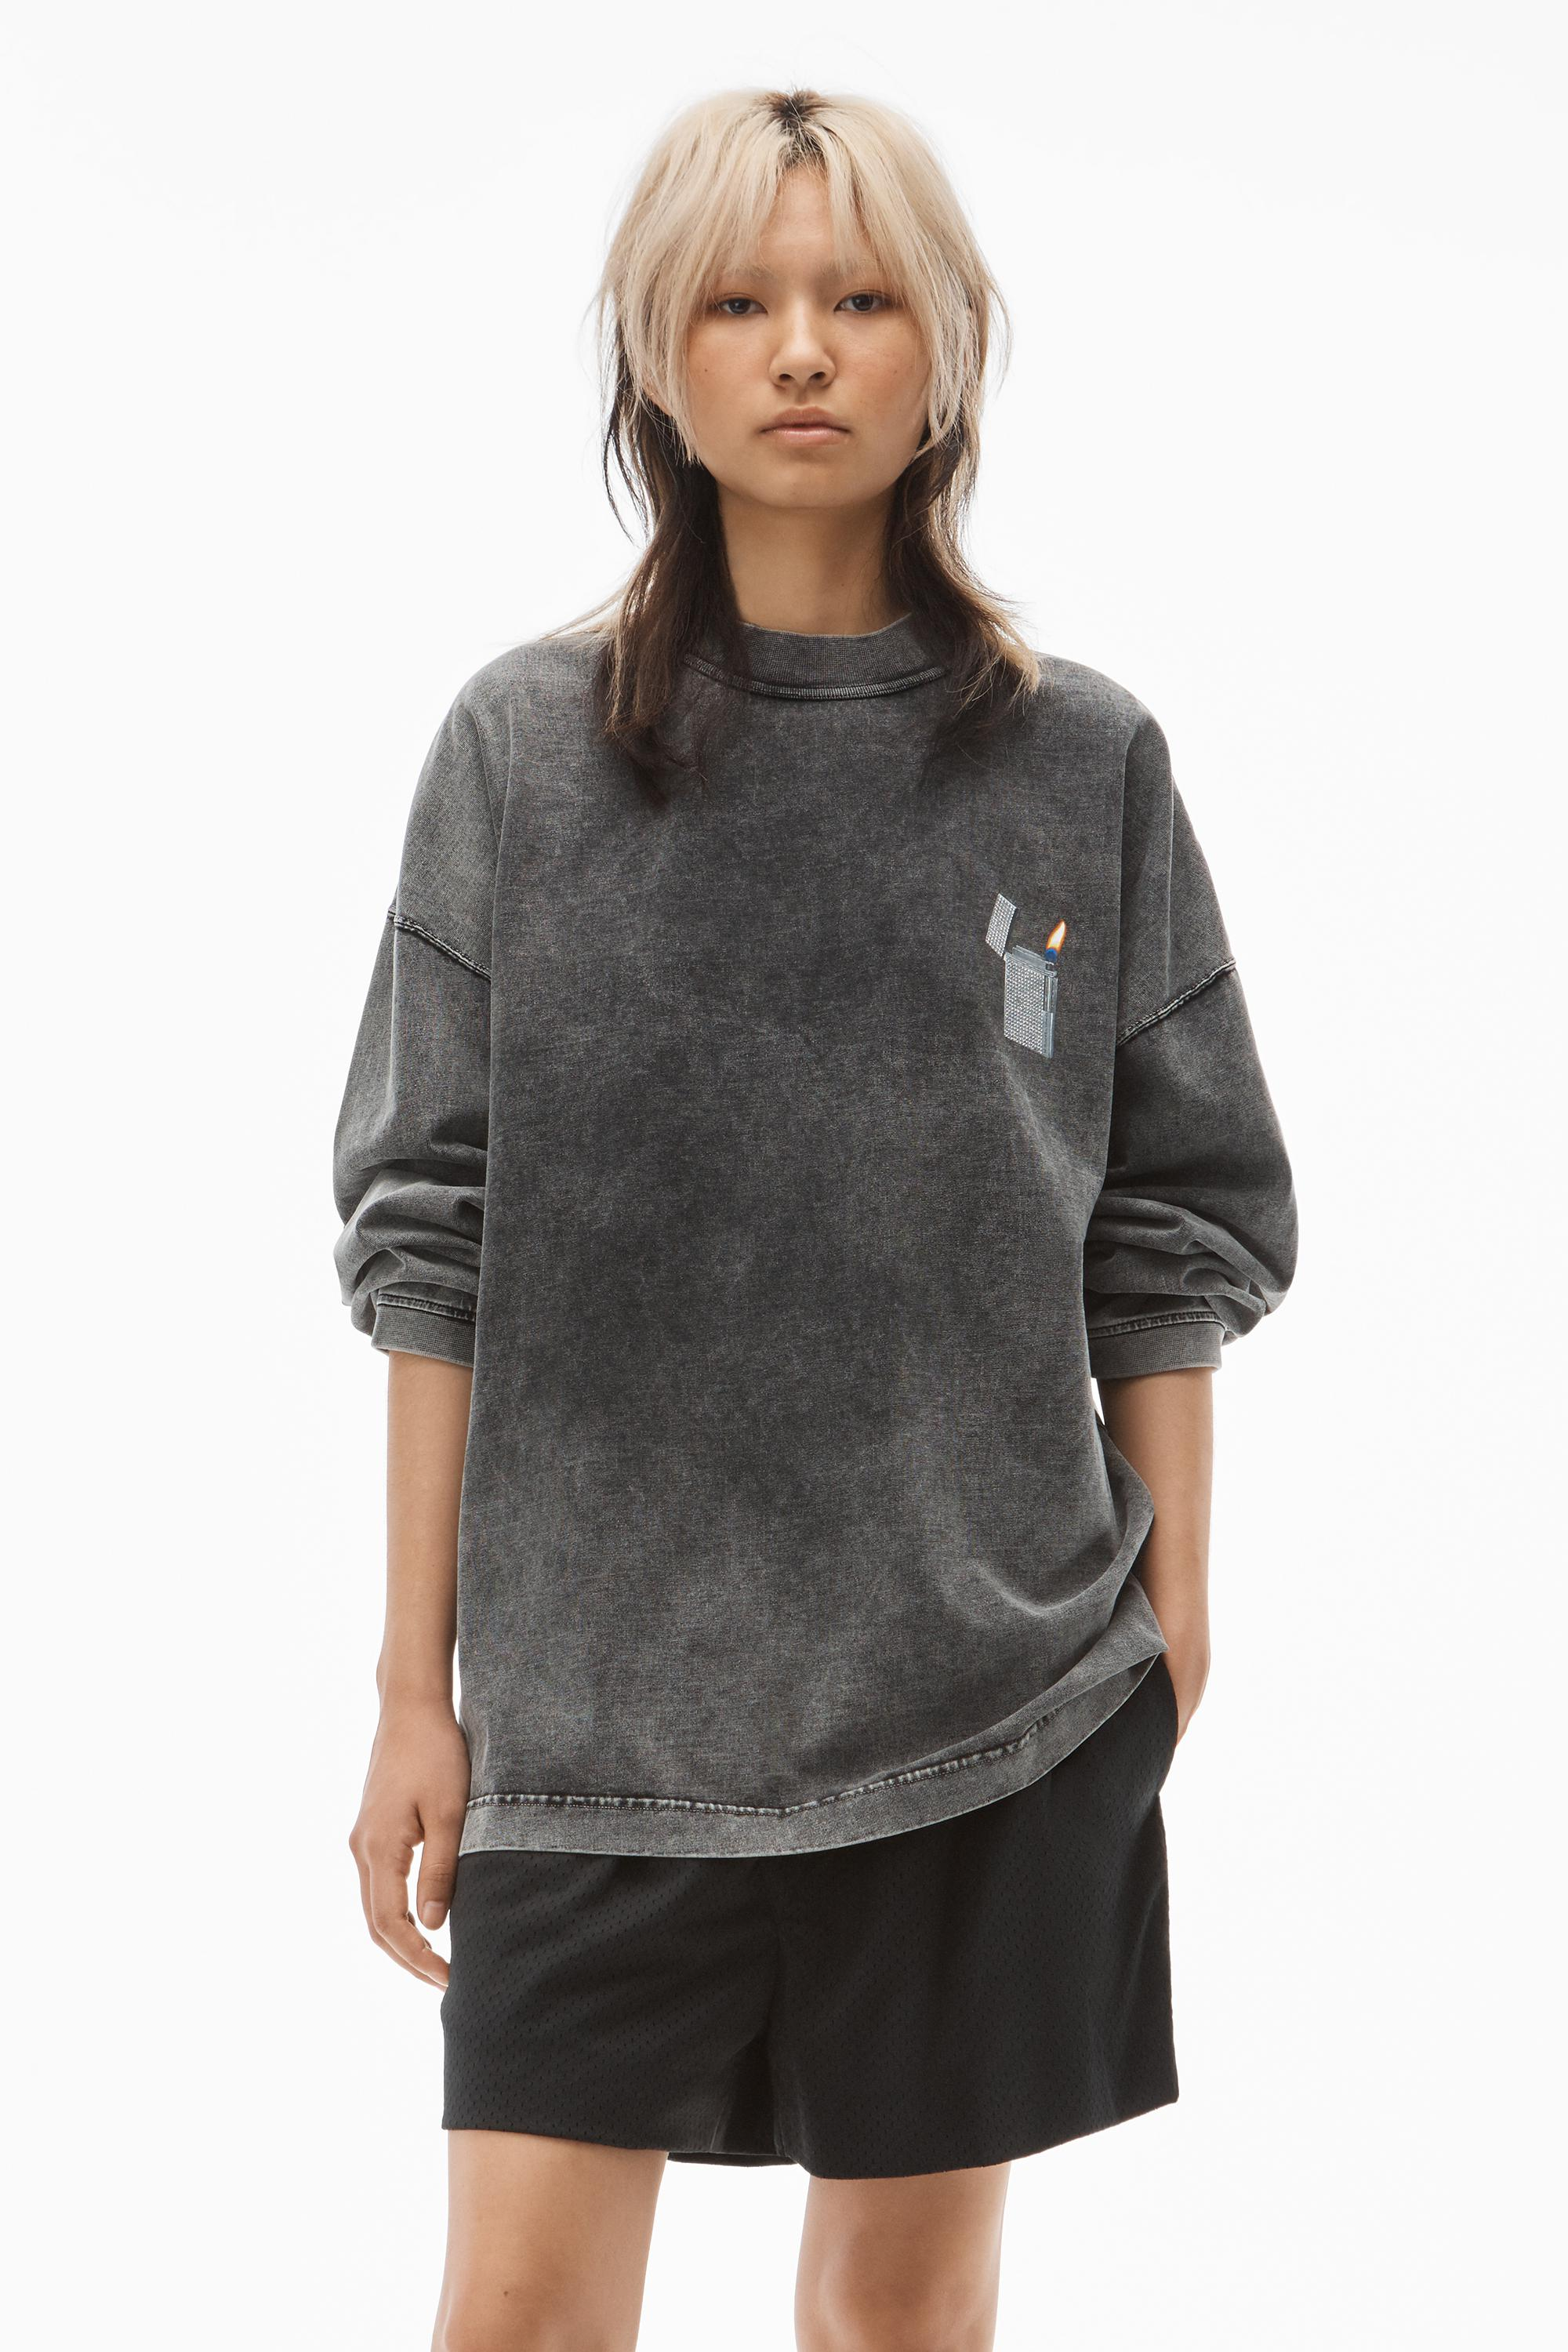 long-sleeve lighter graphic tee in compact jersey